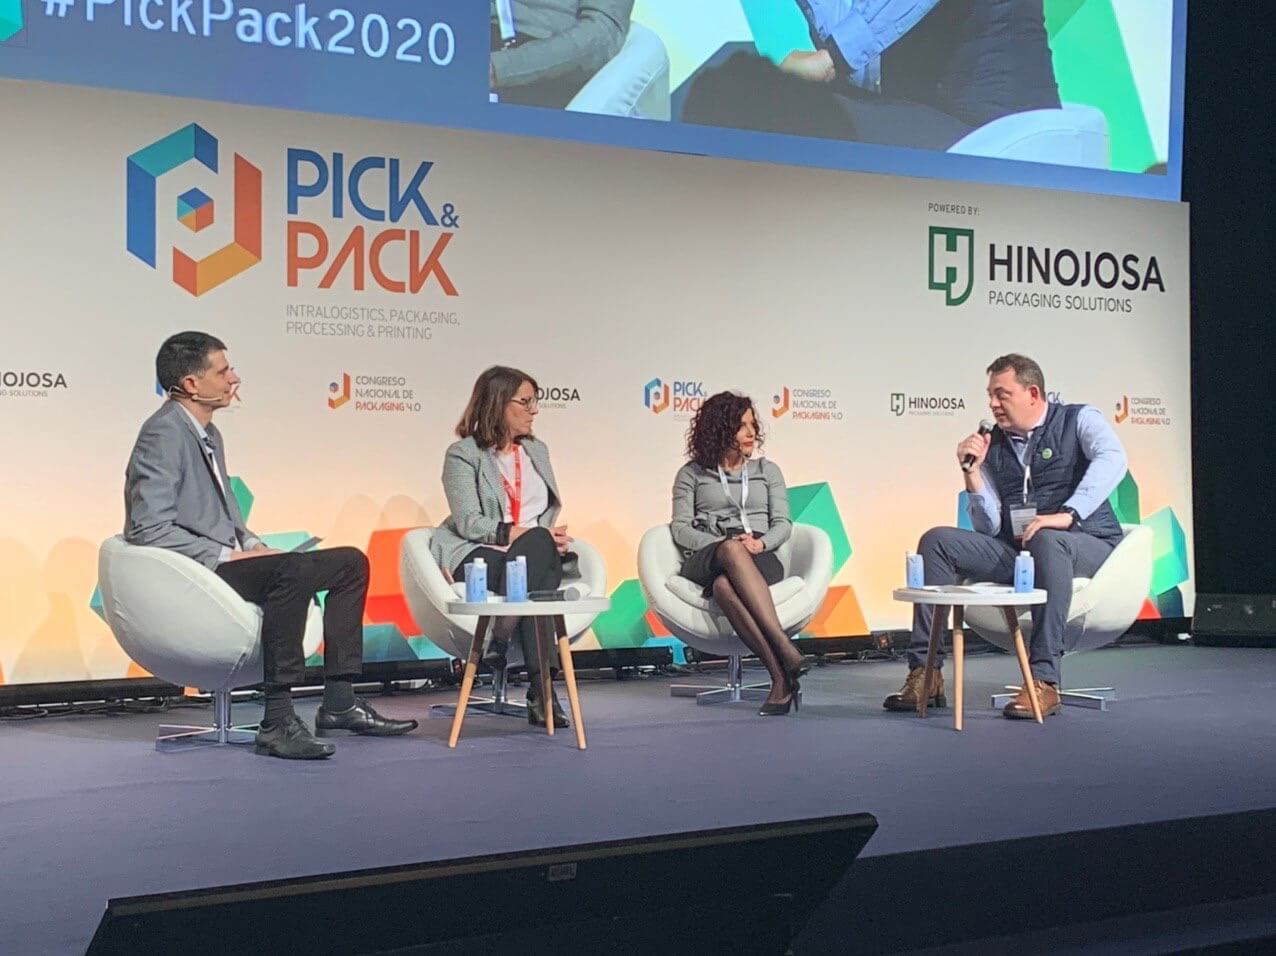 (ESP) CLÚSTER FOOD+i PONENTE EN LA FERIA PICK&PACK EN LA SESIÓN RETOS DE SMART PACKAGING